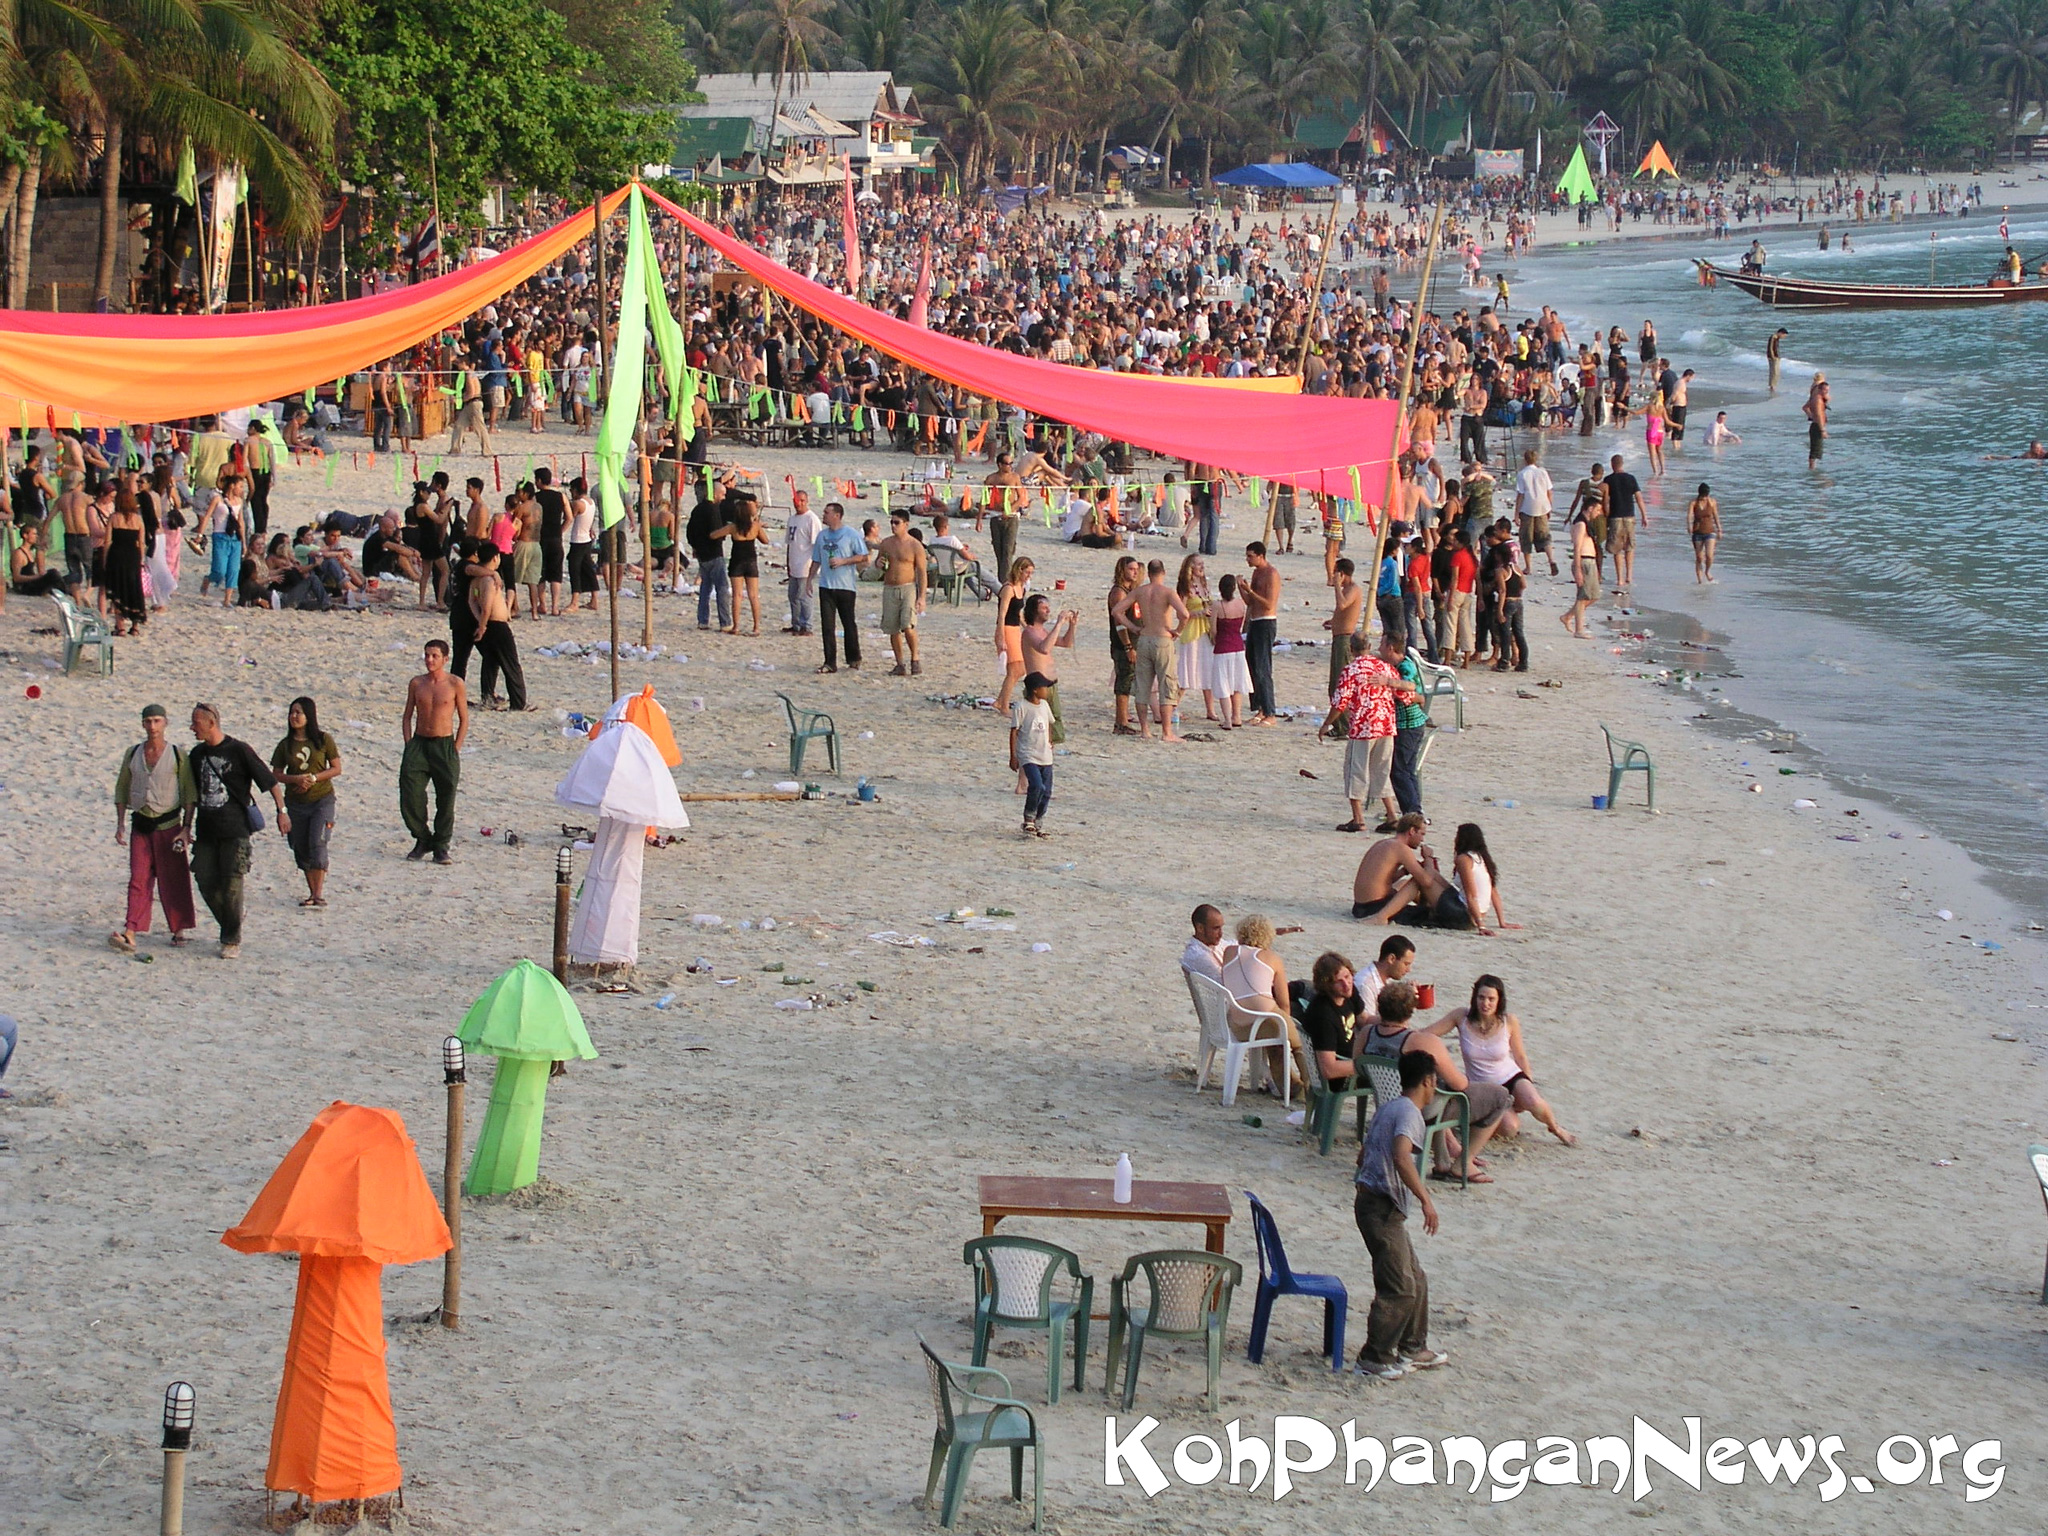 Koh Phangan Full Moon Party At Had Rin Beach A Typhoon Called Muifa And The Loy Krathong Festival